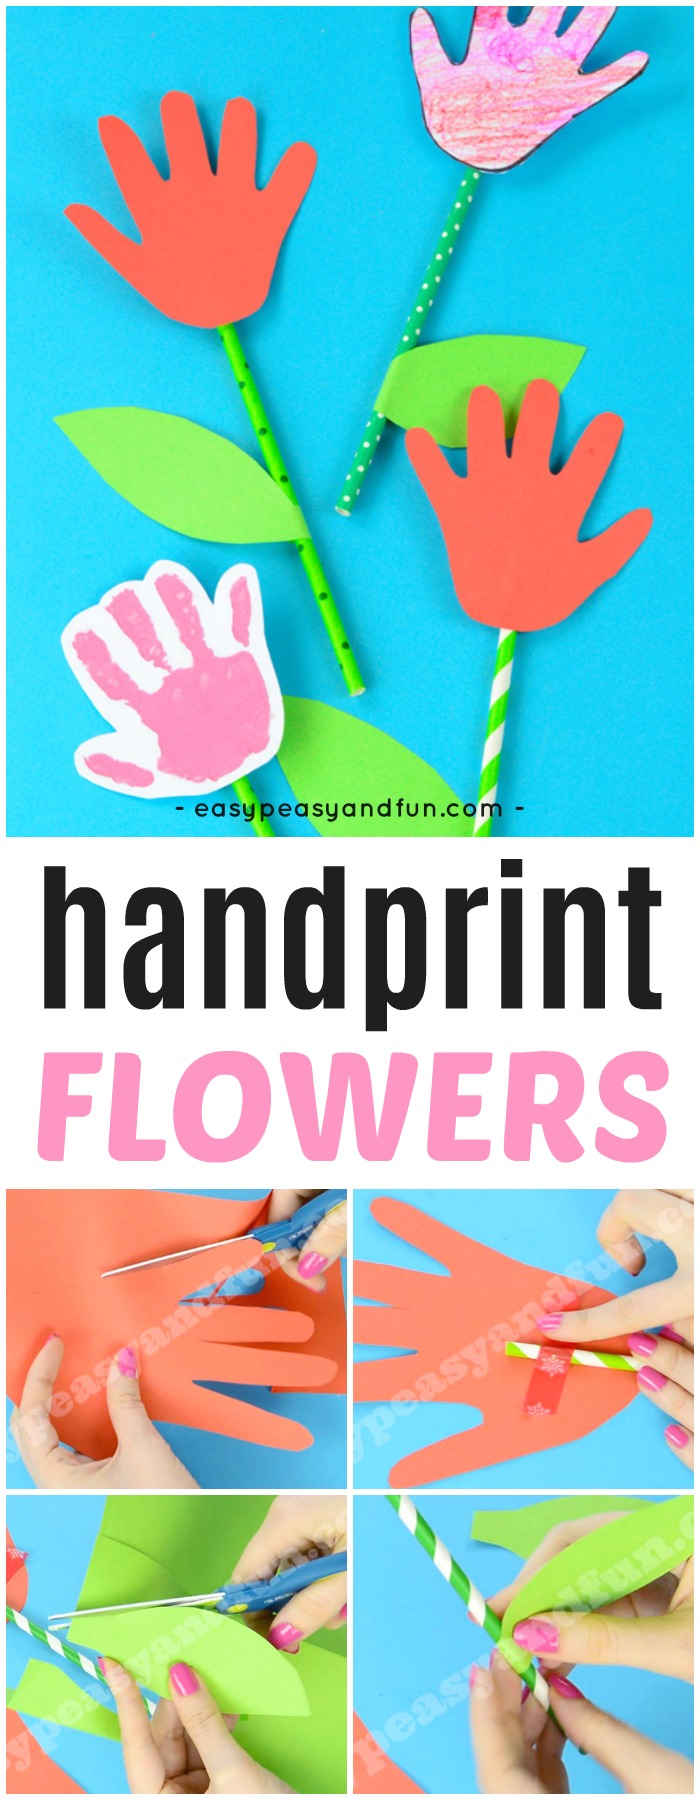 Handprint Flower Craft. Simple and fun Spring craft idea for kids to make. #handprintcrafts #flowercrafts #Springcrafts